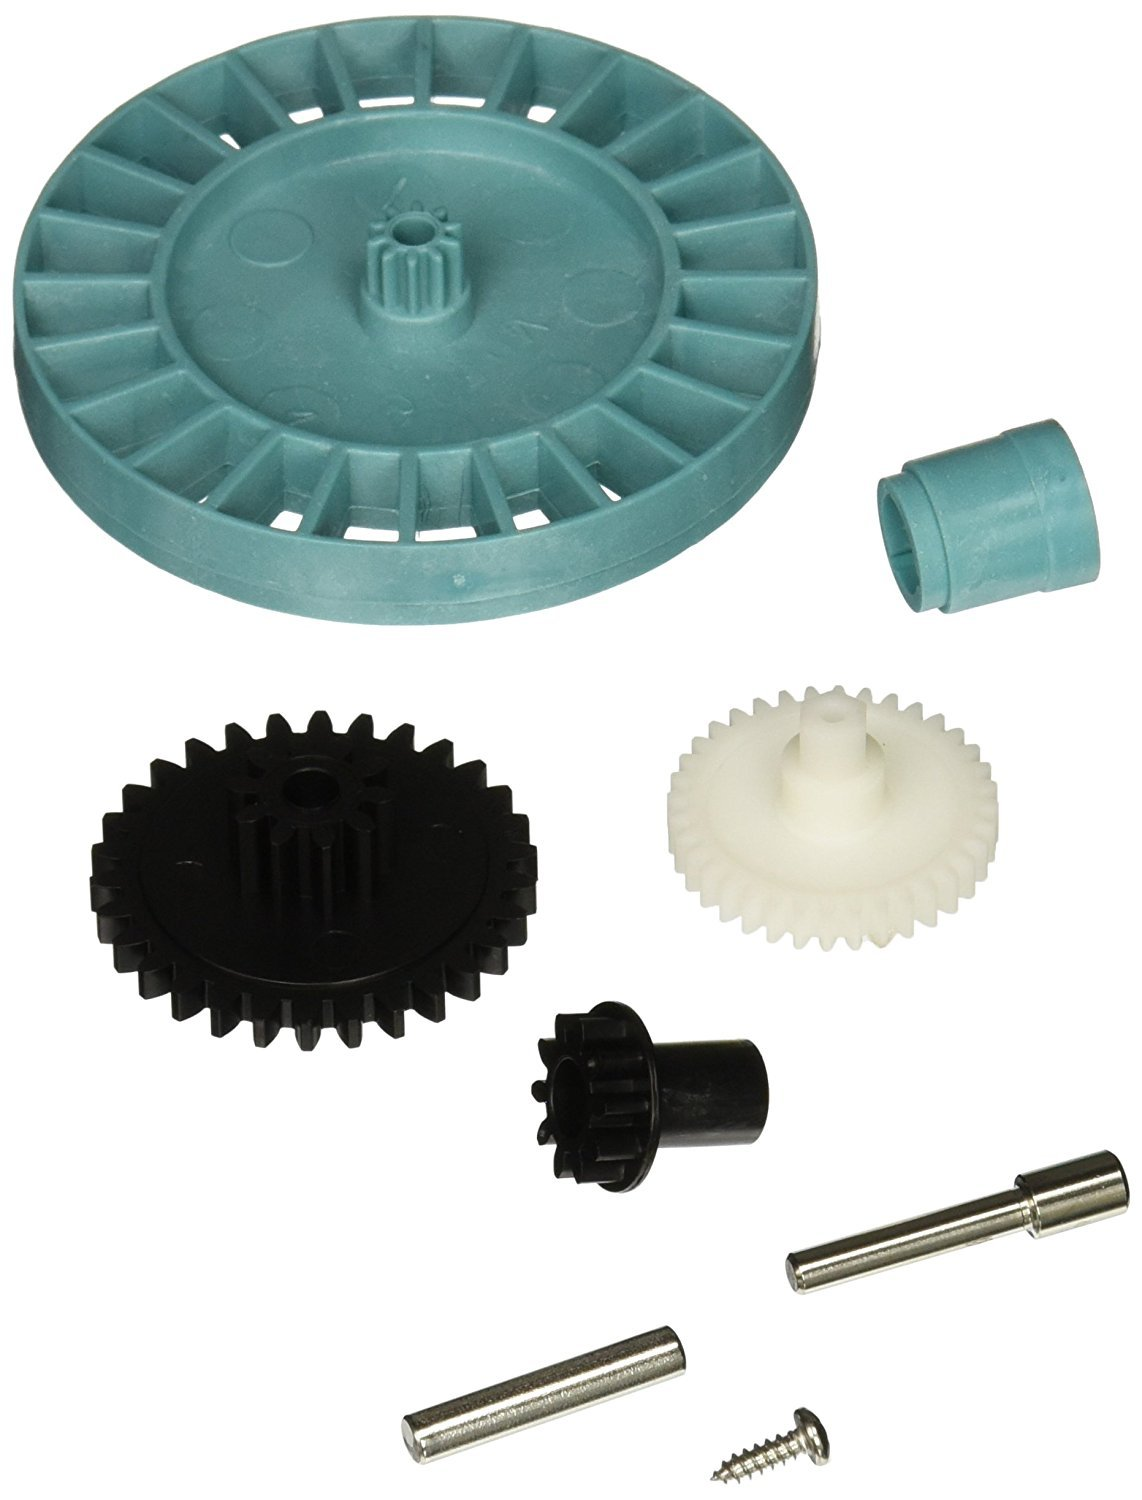 Hayward AXV079VP Medium Turbine Spindle Gear Replacement Kit for Select Hayward Pool Cleaner by Hayward (Image #1)